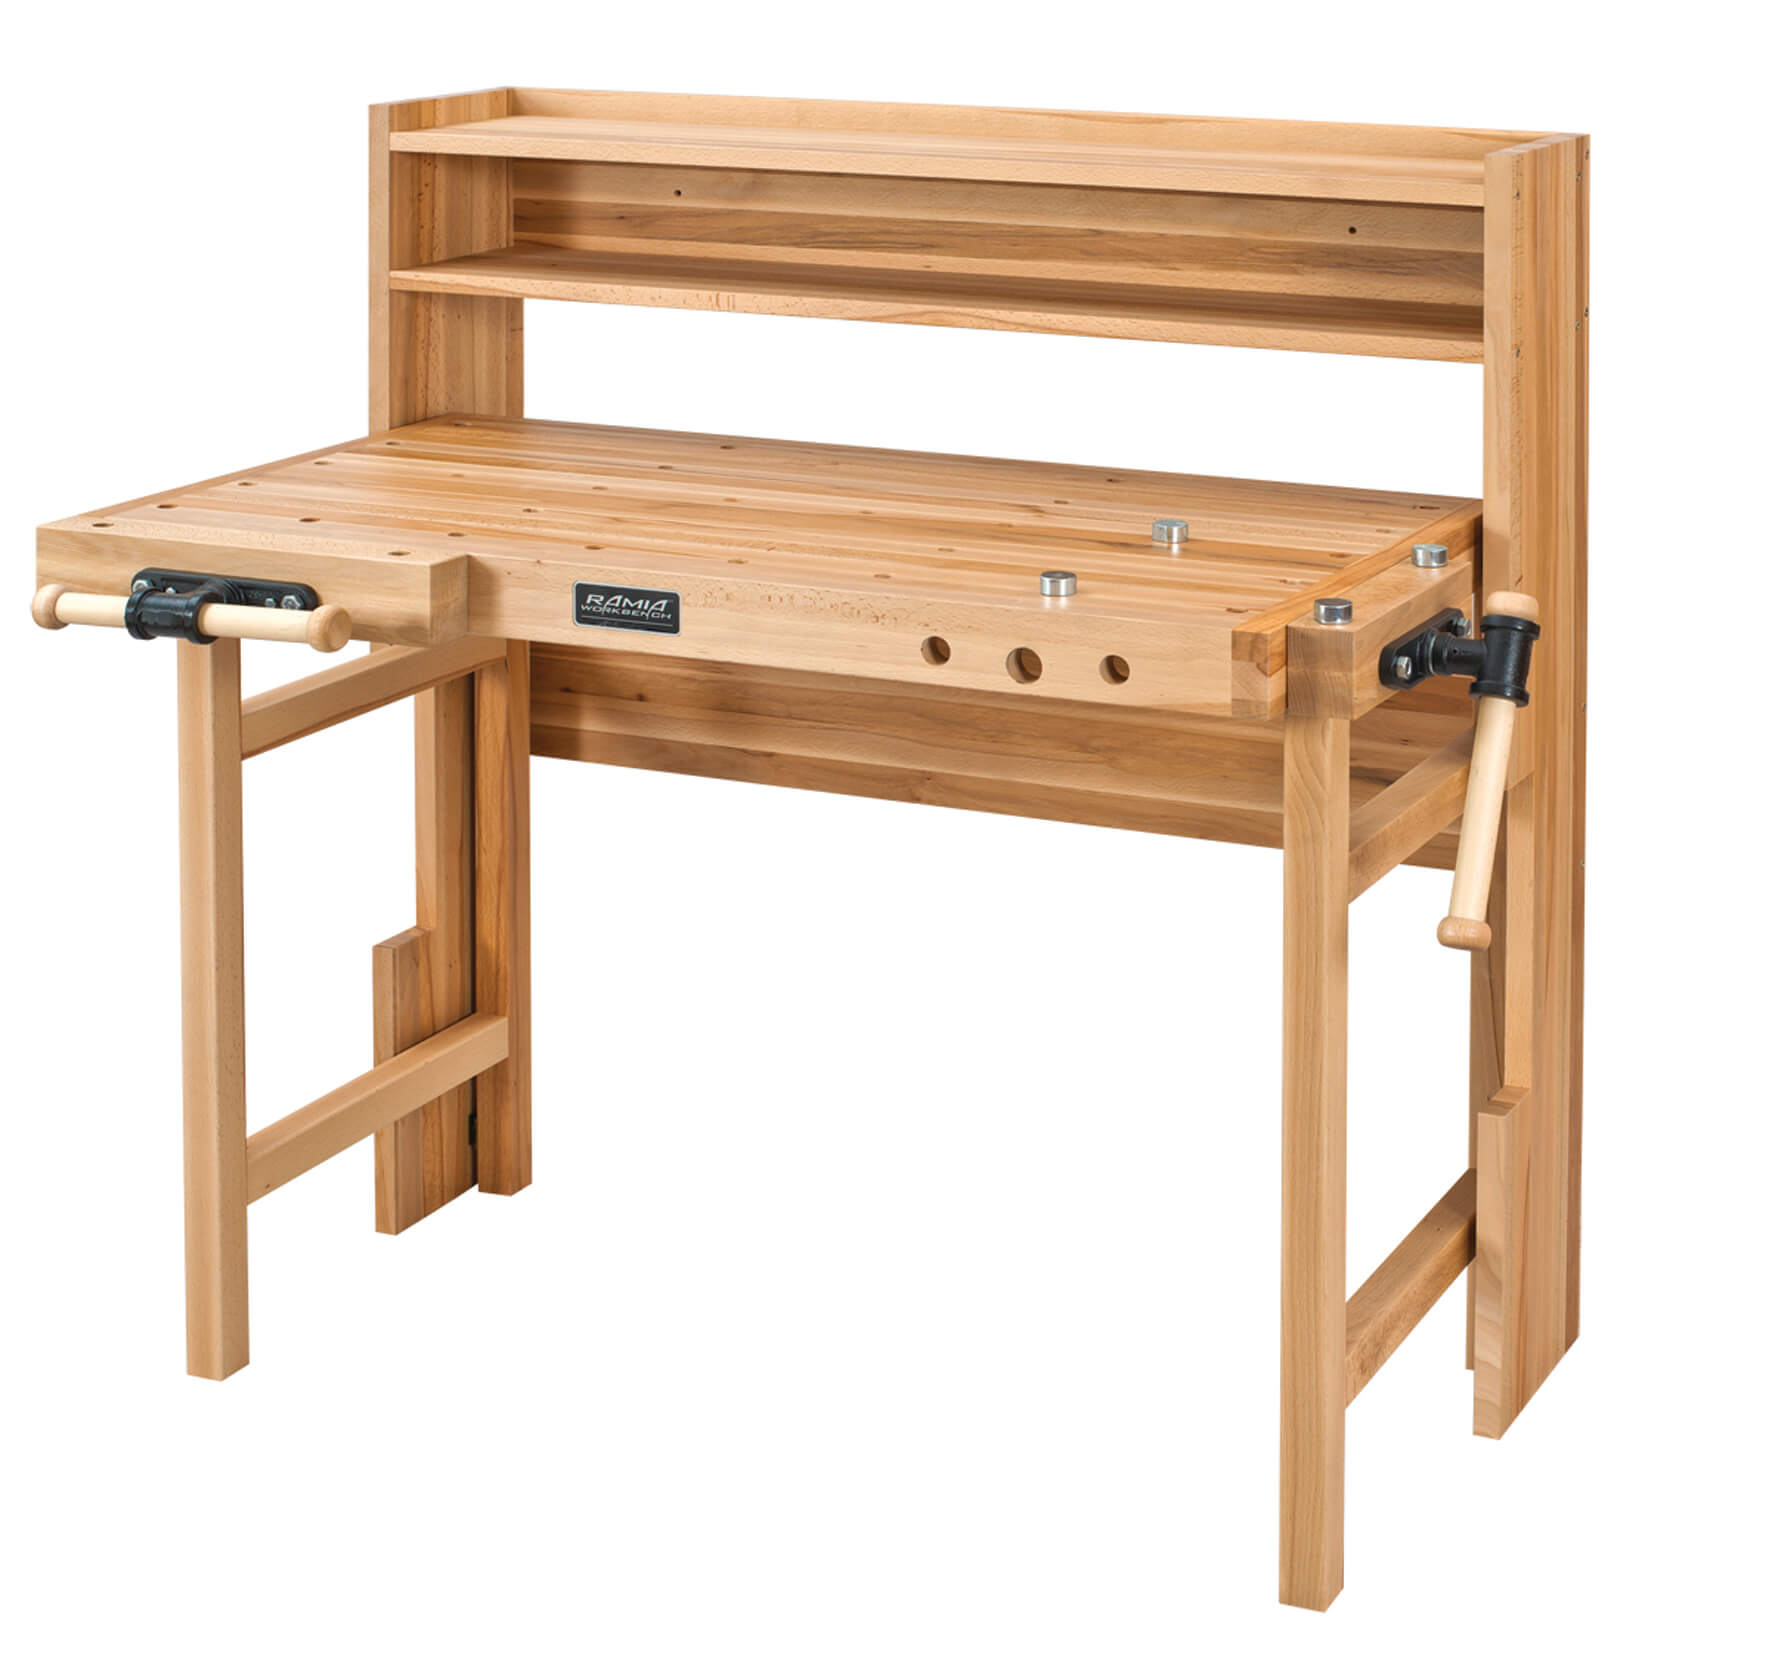 Edubench Folding Bench - wall mounted